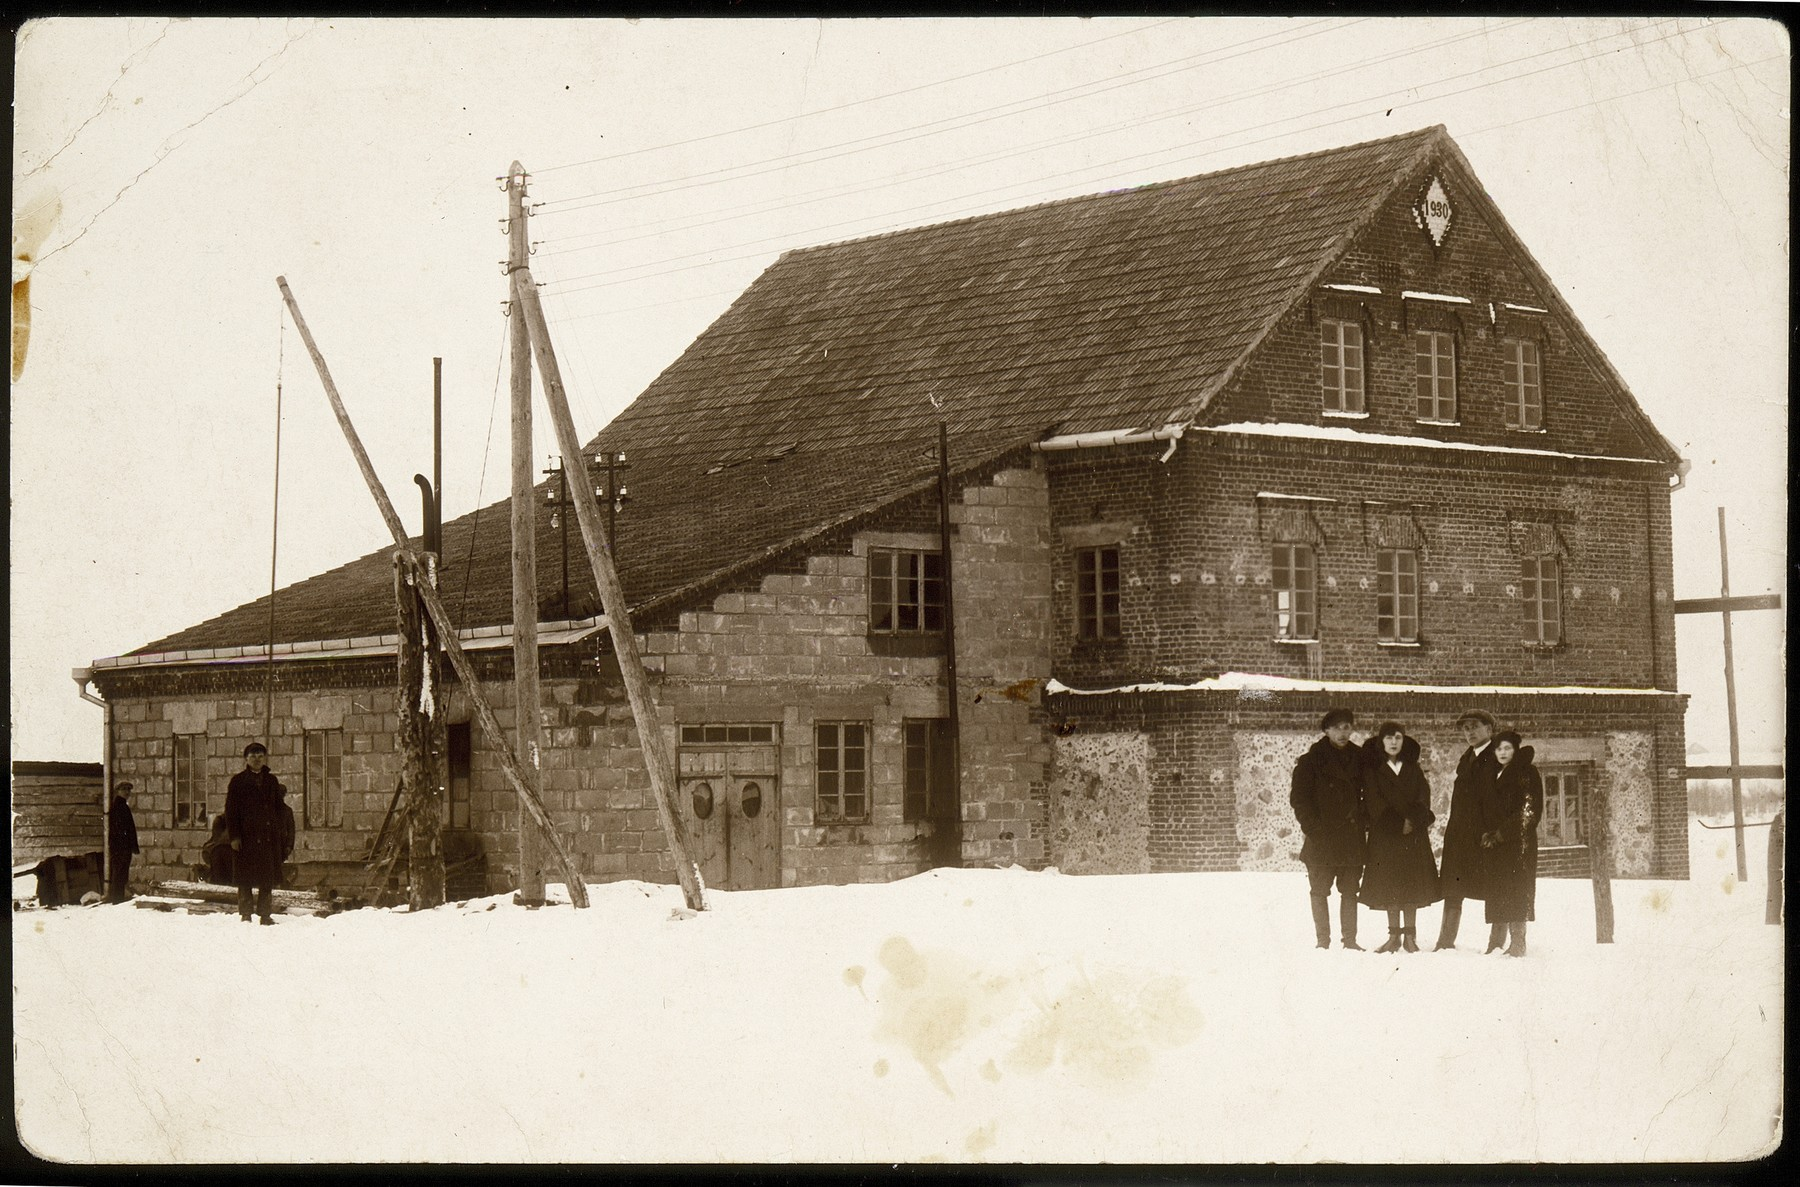 The inauguration of an electrical power plant building, which also housed the new electric flour and saw mills.  The power plant was built and owned by the Kiuchefski family and Moshe Kaganowicz.  Standing in front of the building are (left to right) Shlomo Kiuchefski, Dora Zlotnik Berkowicz, Zeev Kaganowicz, and wife, Masha (née Kiuchefski).    Two Kaganowicz brothers, Moshe and Zeev married two Kiuchefski sisters, Hannah and Masha.  Moshe and Hannah moved to Vilna.  In addition to his partnership in the electric power plant, Moshe also served as an agent for a cosmetic company.  Dora immigrated to Palestine; Zeev and Masha were murdered by the Germans; Shlomo was killed by the AK.